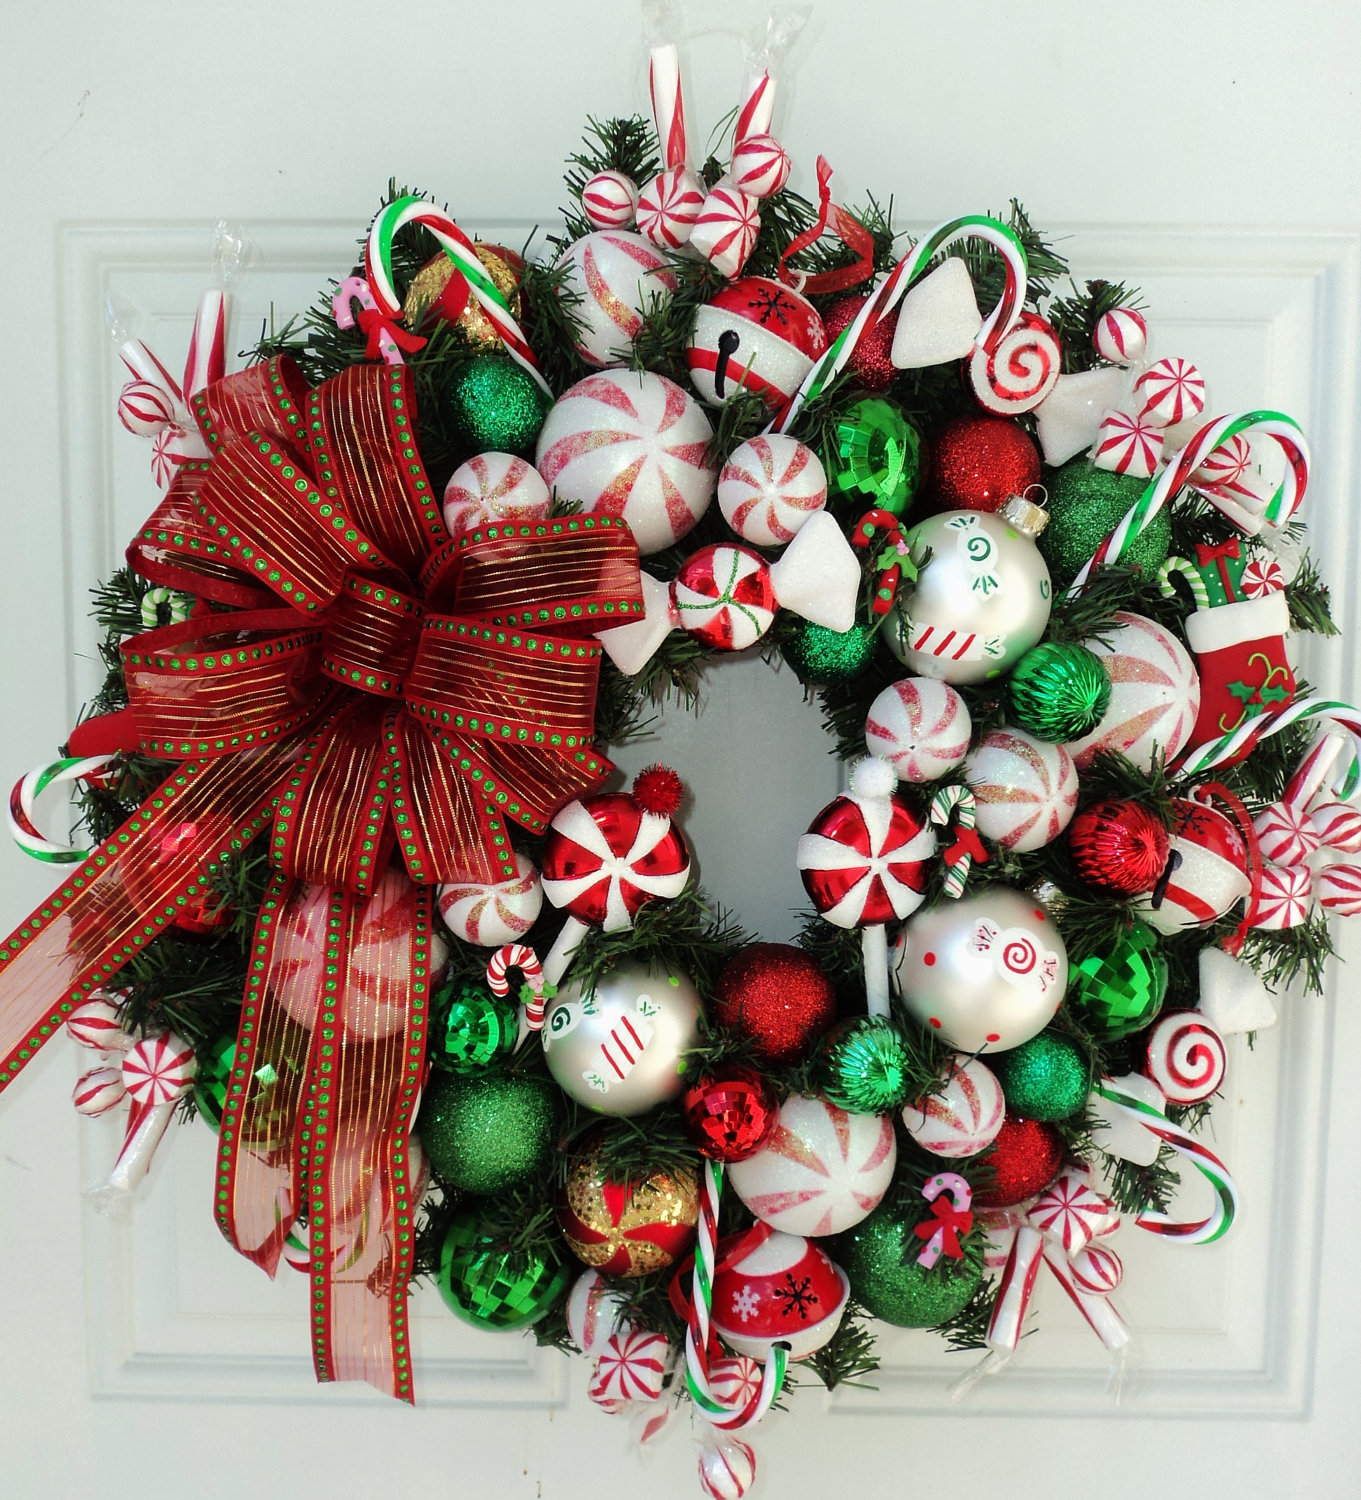 Make A Diy Christmas Wreaths Yourself To Celebrate The Holiday Season Elly S Diy Blog